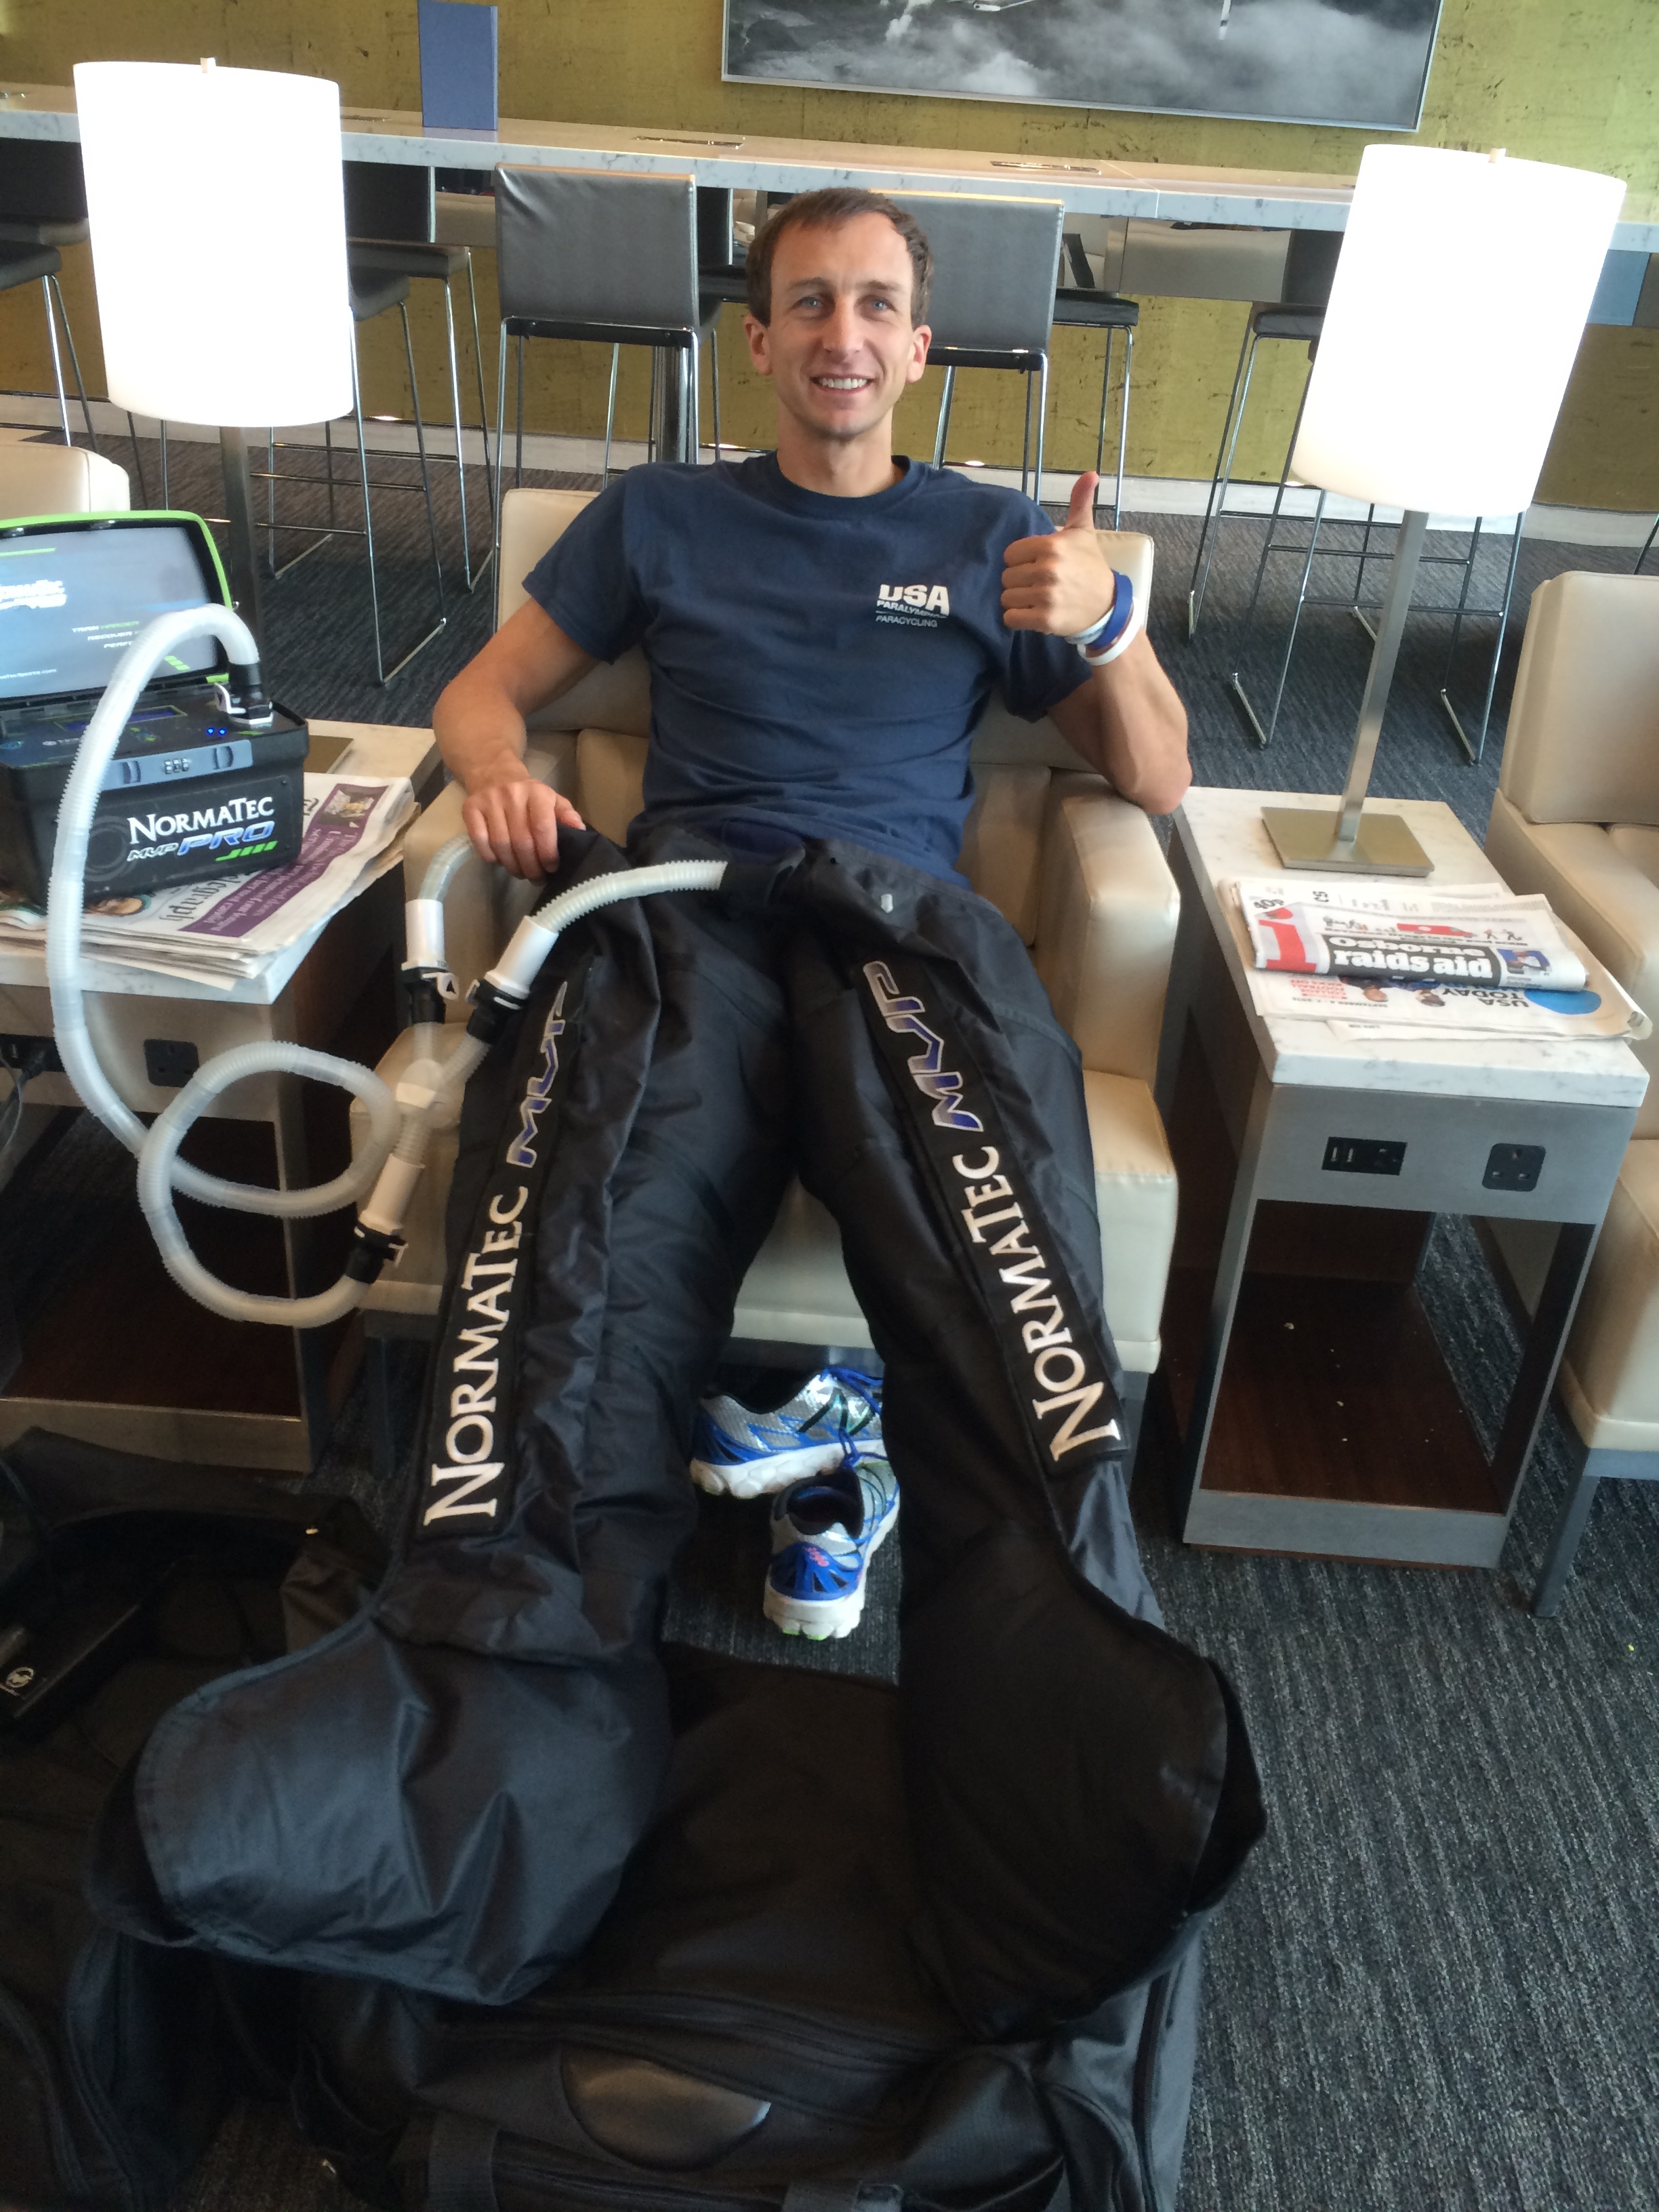 Recovering between races using the NormaTech boots to flush the legs.